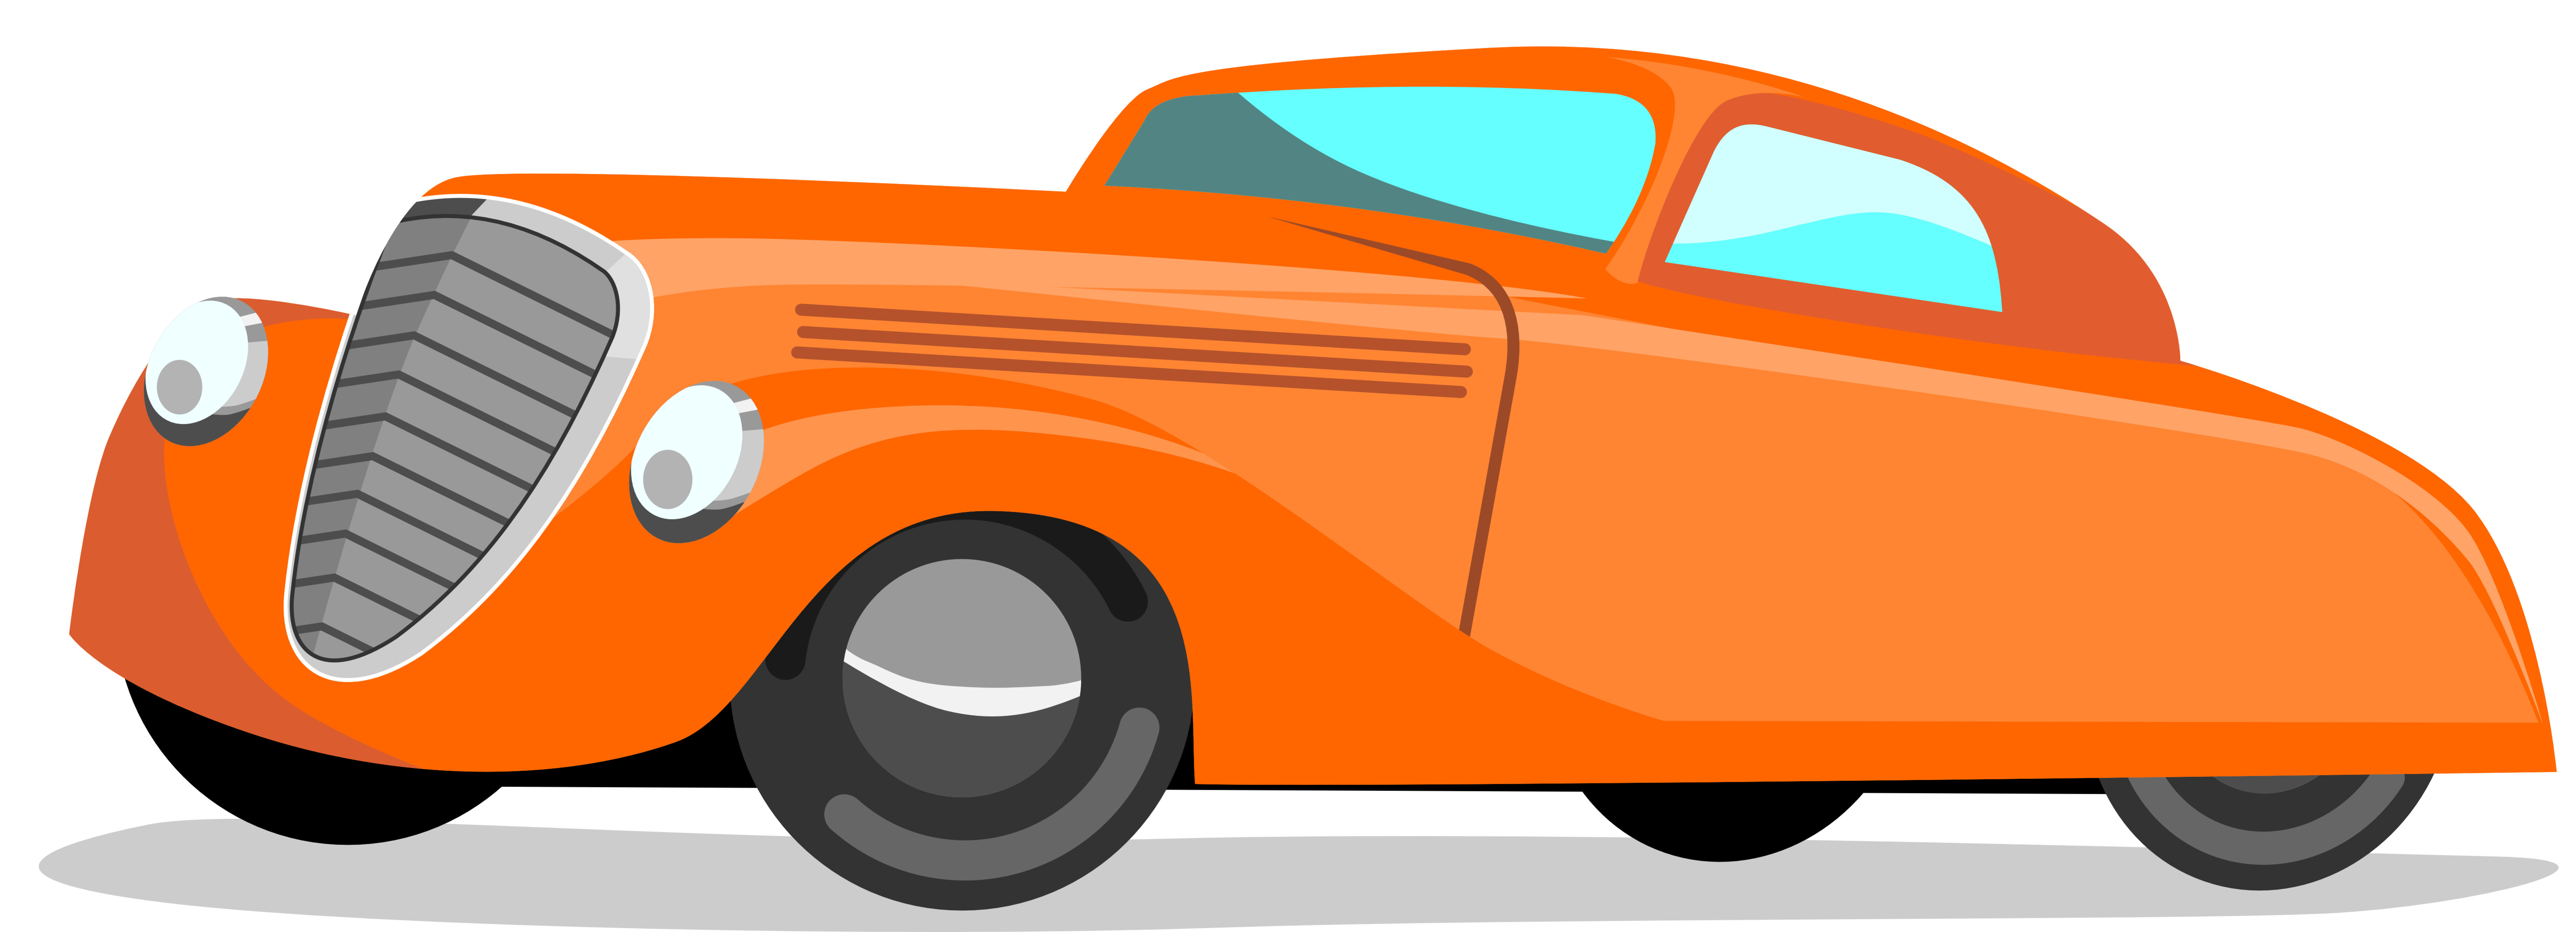 Classic car and new car picture clipart graphic freeuse download A New And A Old Car Clipart - ClipArt Best graphic freeuse download